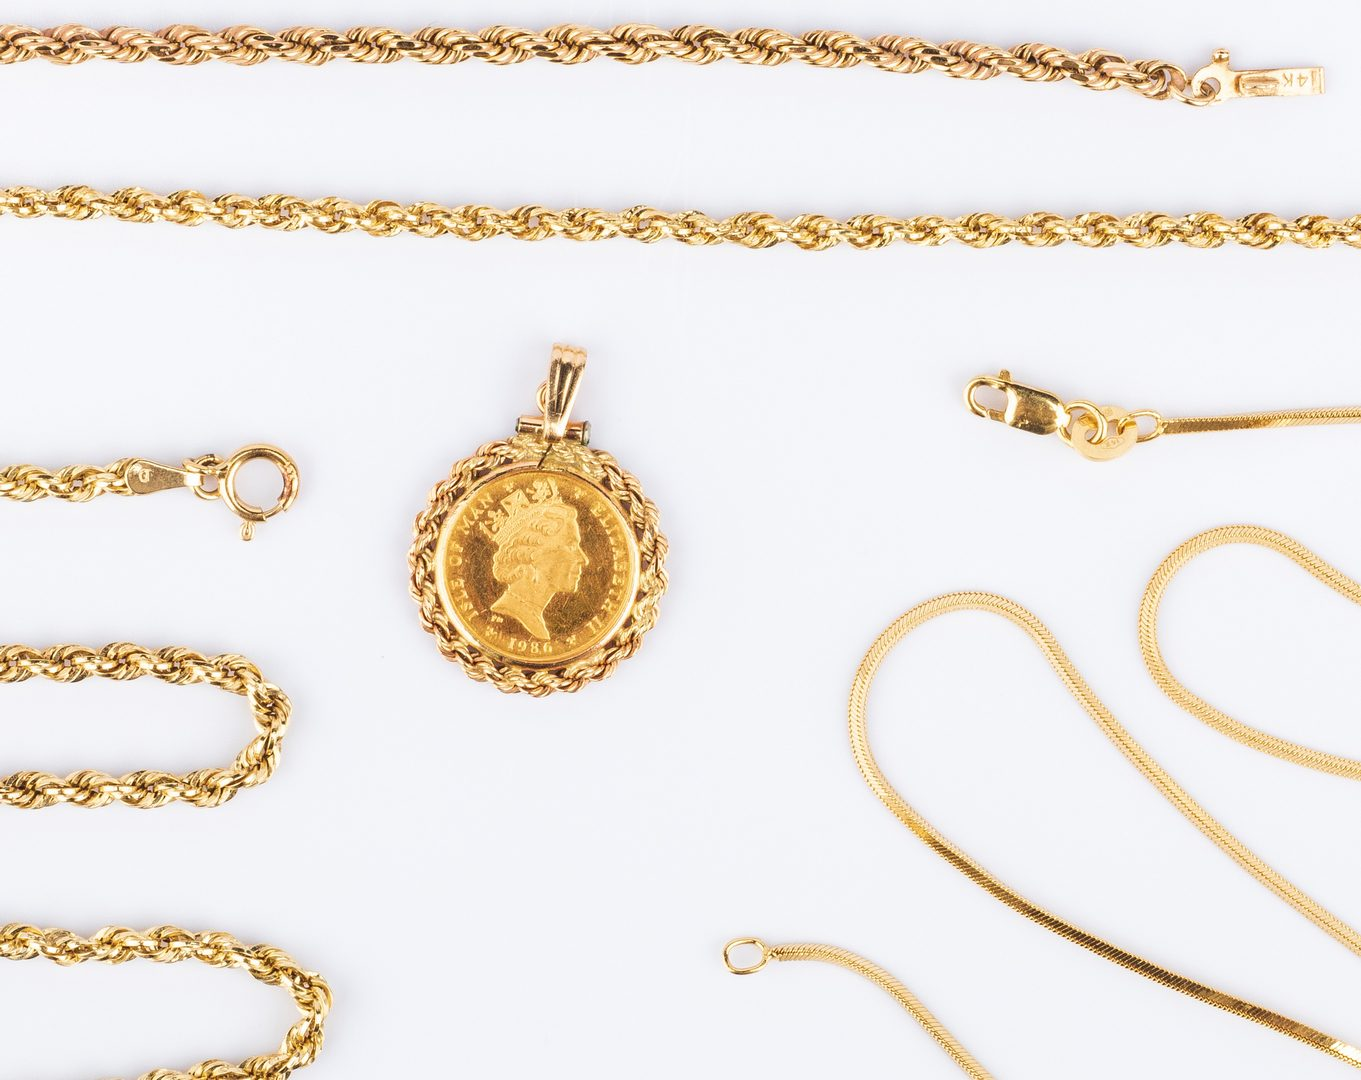 Lot 405: 4 items of 14K Gold Jewelry plus Coin (5 pcs total)